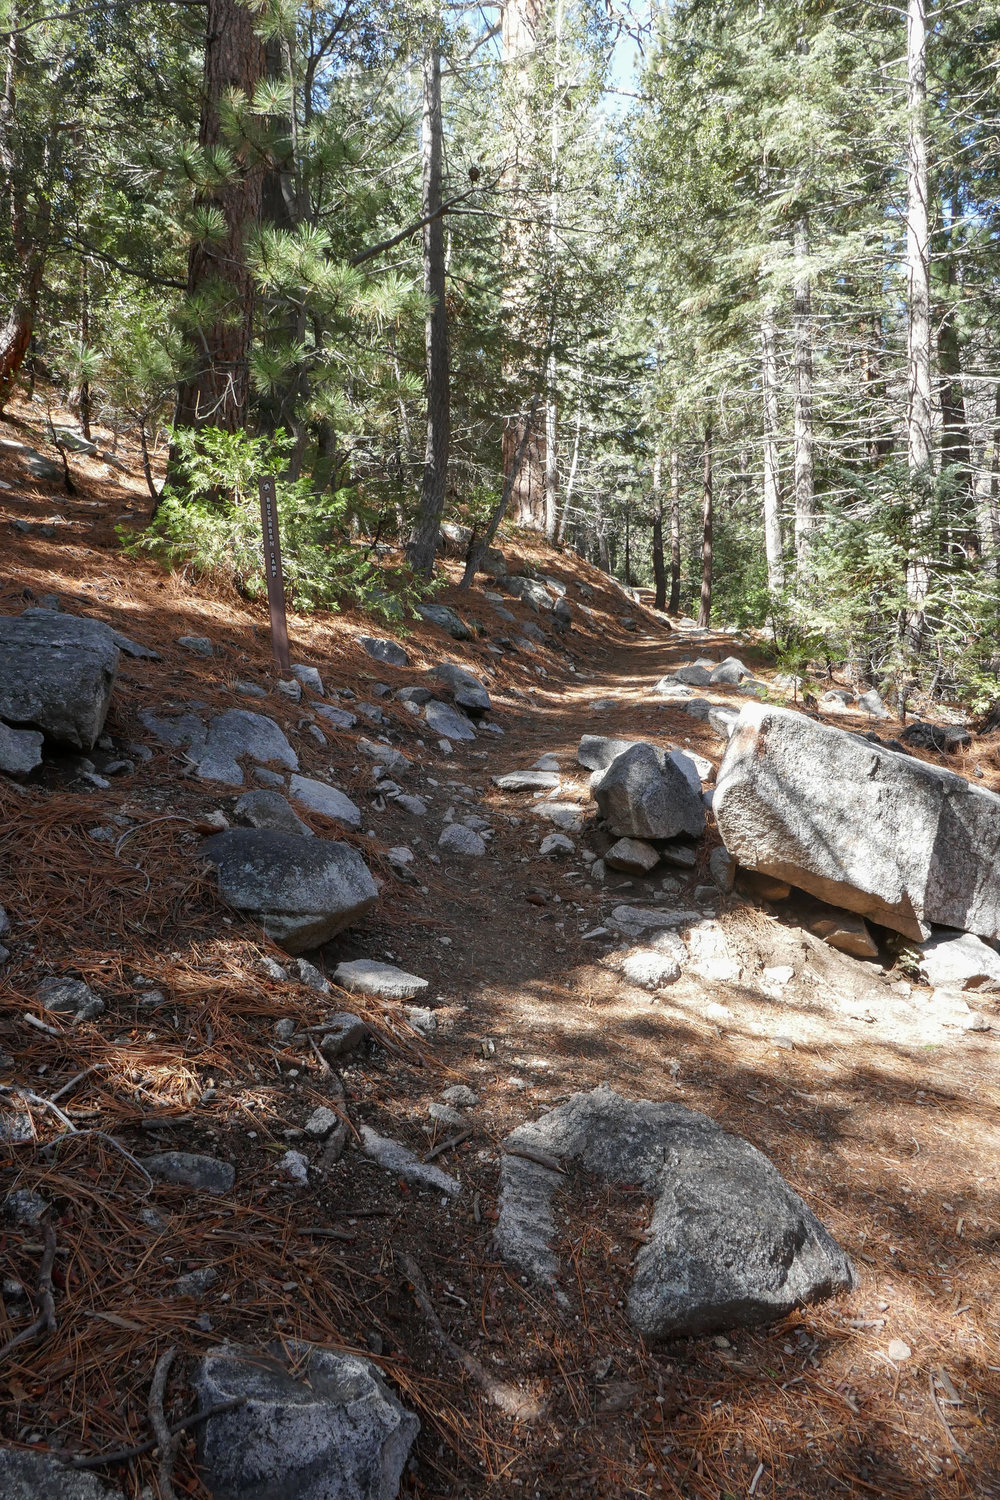 This is the junction where the Burkhart Trail meets the PCT. The Burkhart Trail back to Burkhart Campground is a really pretty trail as well.